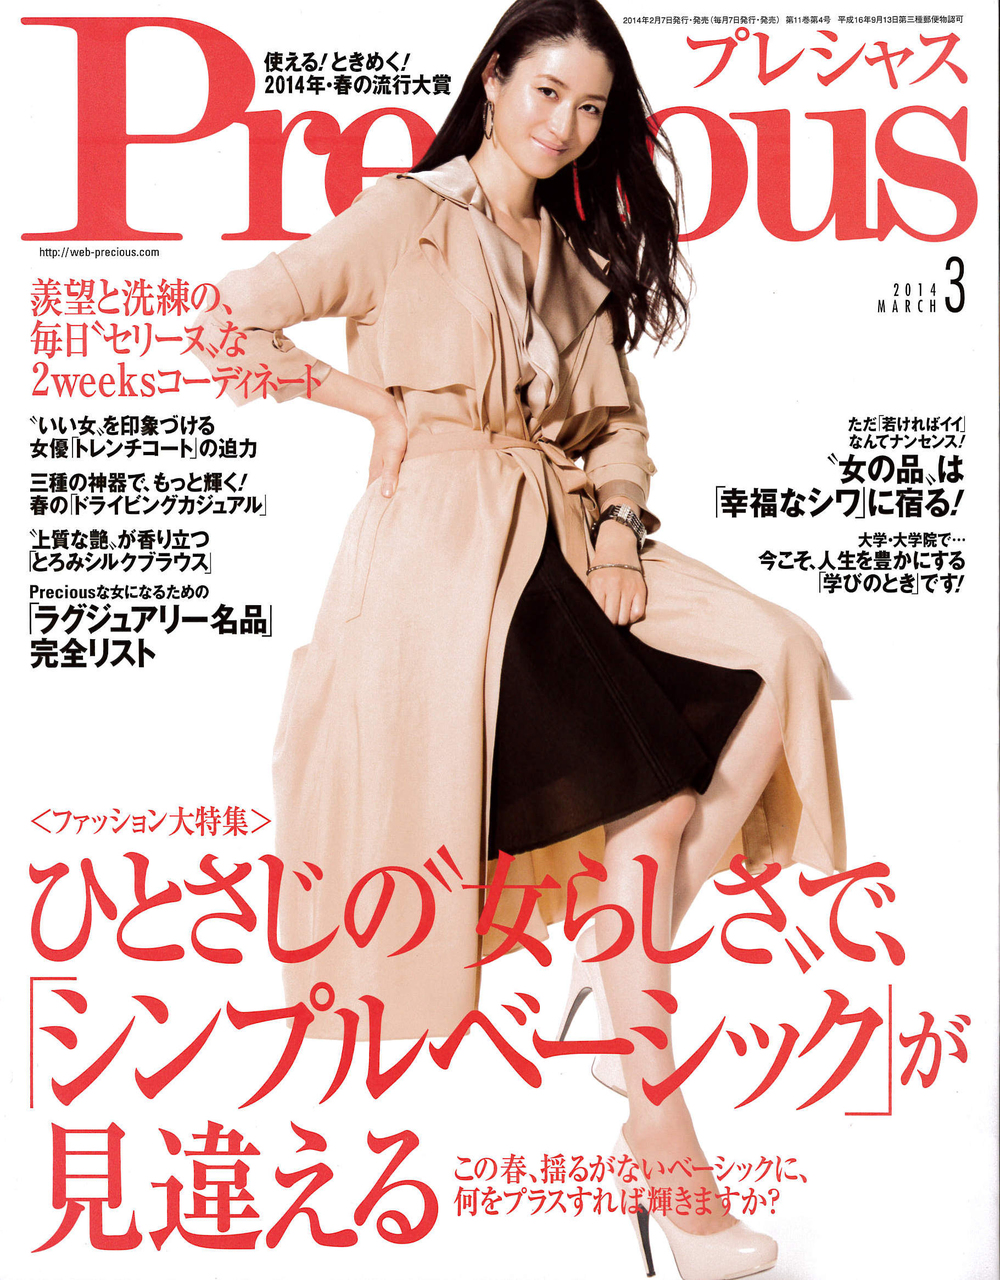 Ms. Koyuki wearing Simon Alcantara sterling silver hoops hand woven with antique silver cord on the March 2014 cover of Precious Magazine, the top selling magazine in Japan!